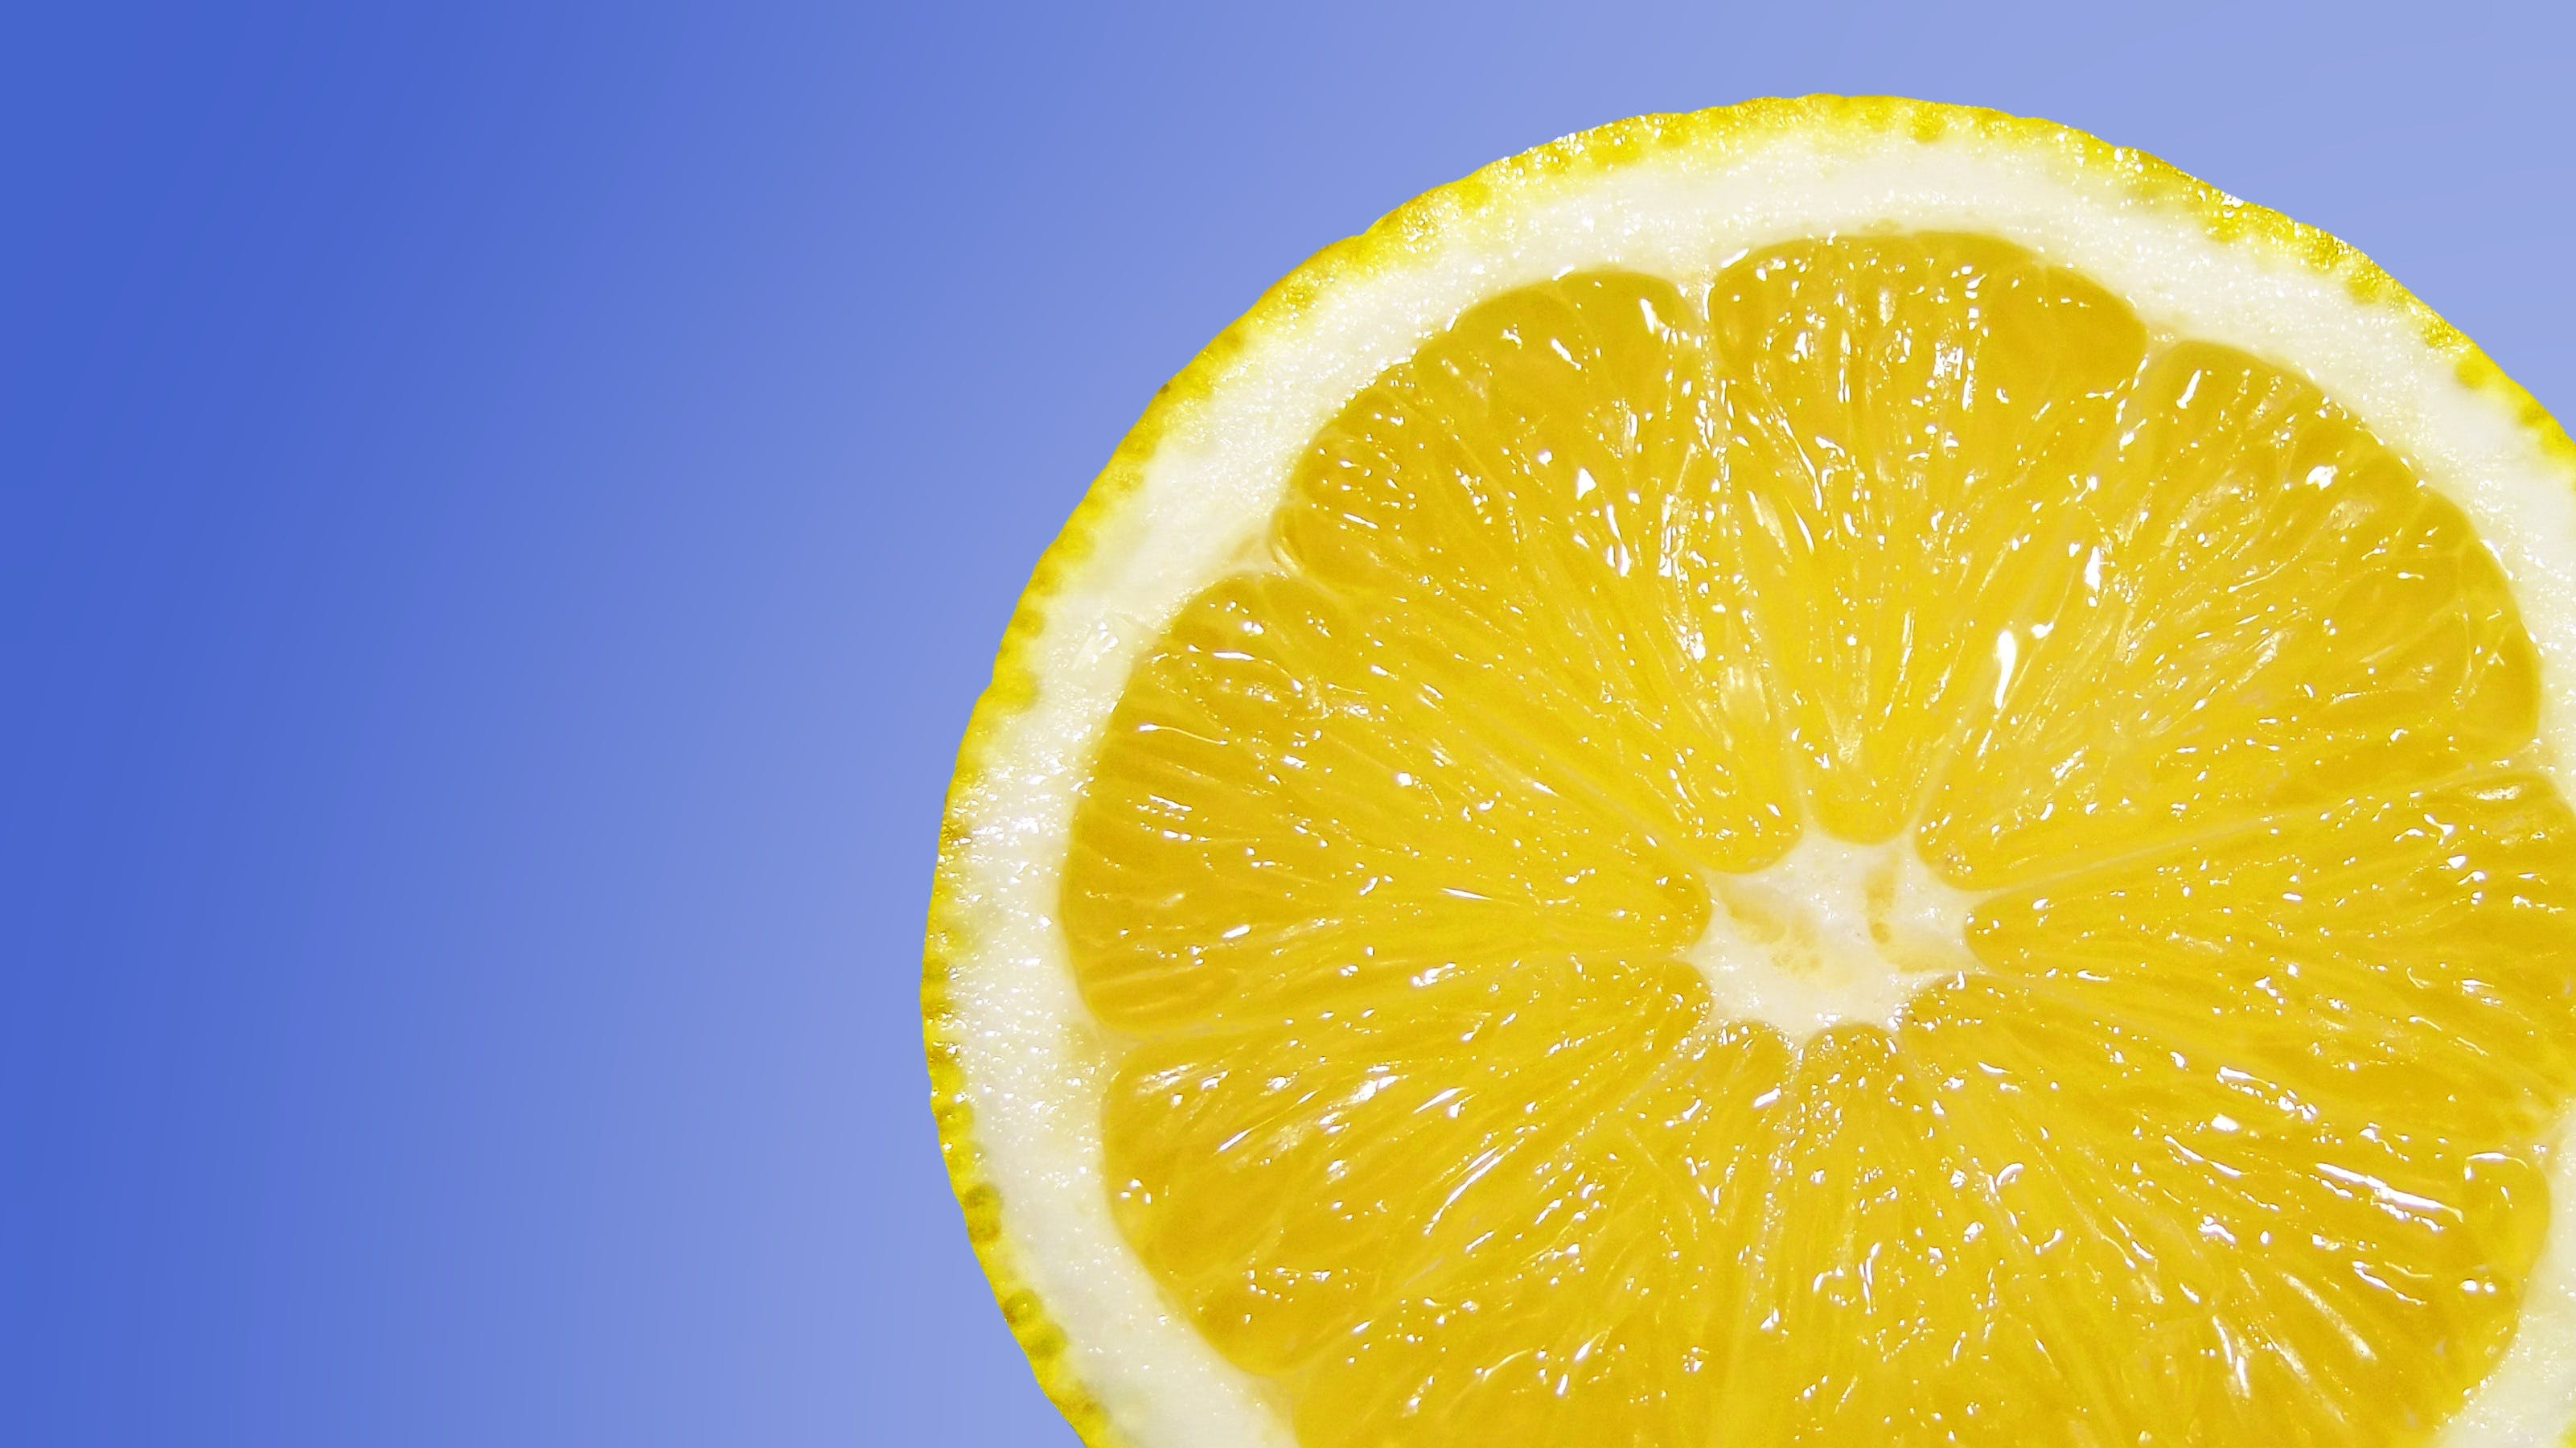 Free stock photo of lemon, fruit, citrus, citrus fruit